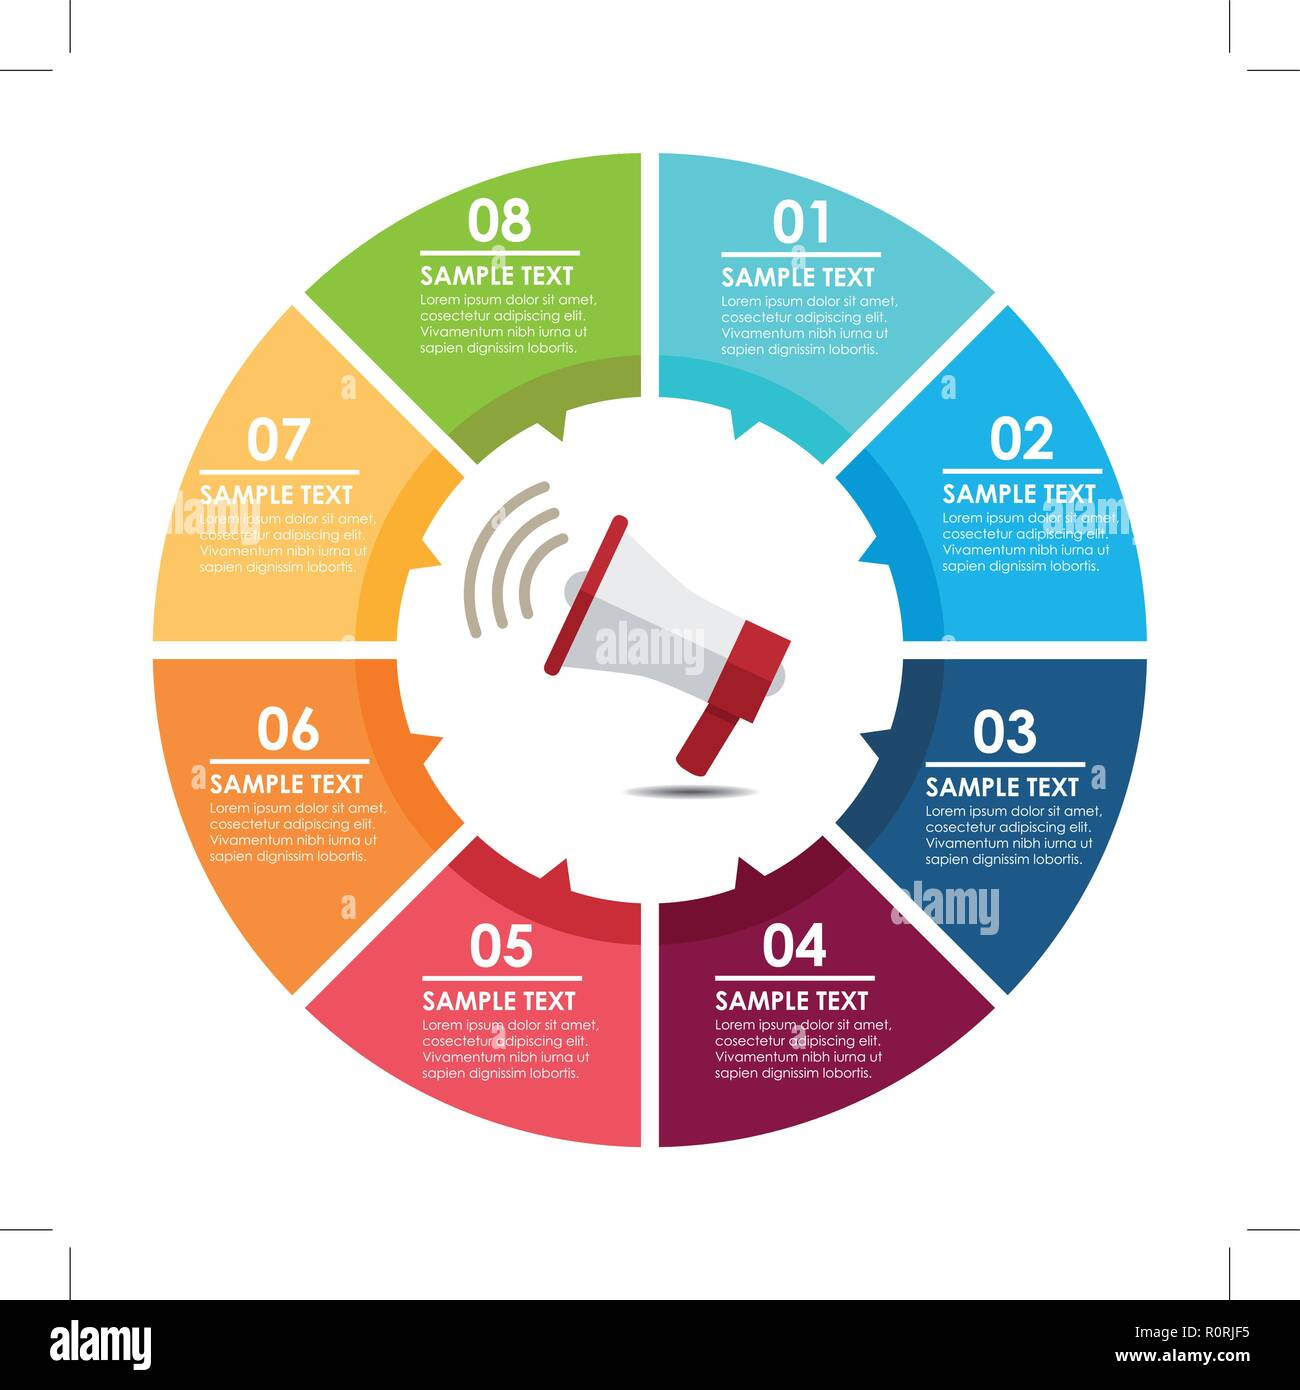 Megaphone circle infographic. Concept broadcasting. Vector illustration - Stock Image